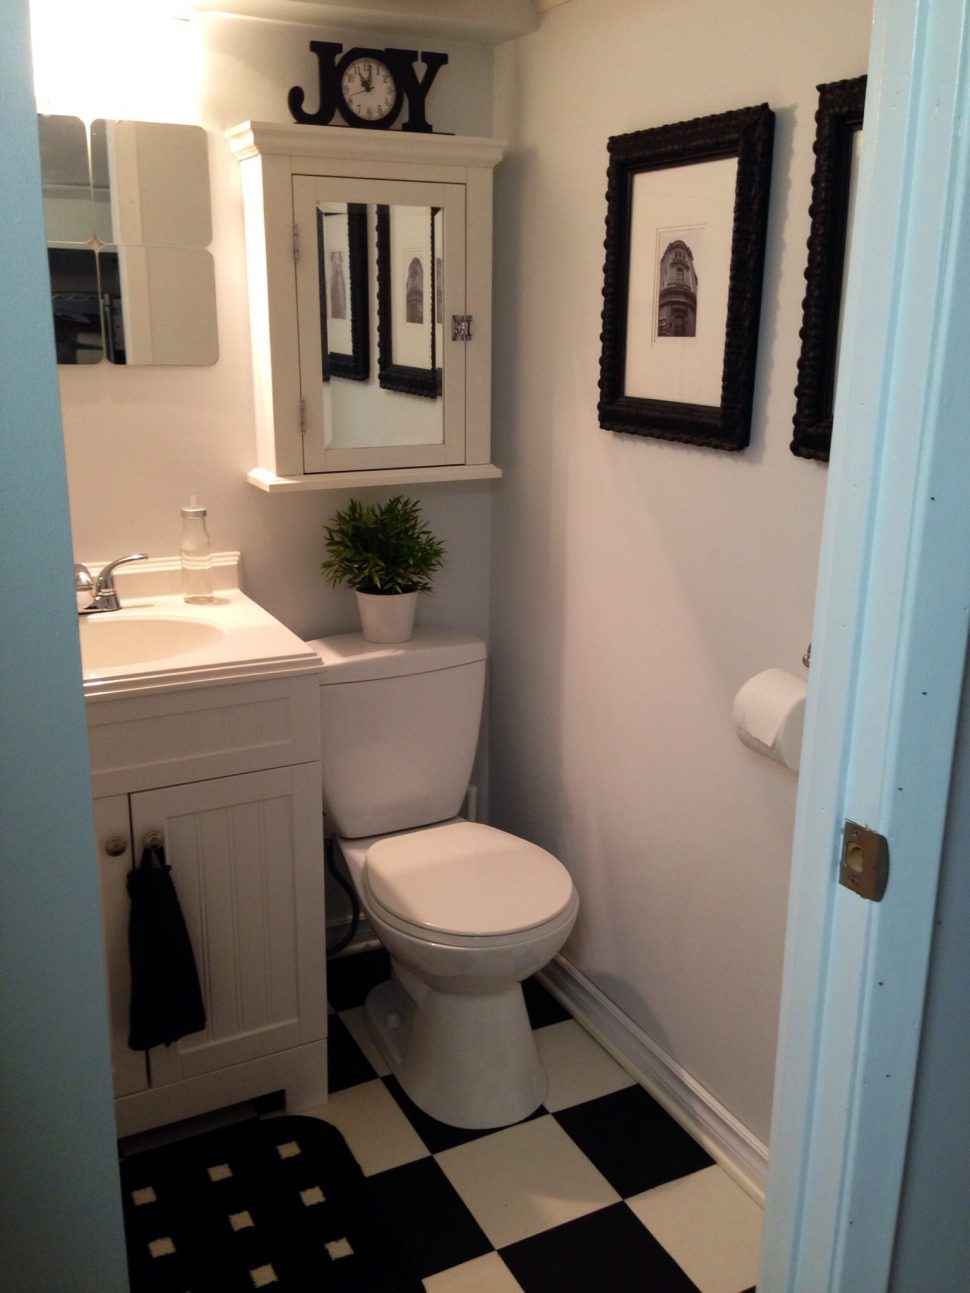 Decorating Ideas for Bathrooms On A Budget Lovely Bathroom Bathroom Decorating Ideas A Bud Pinterest